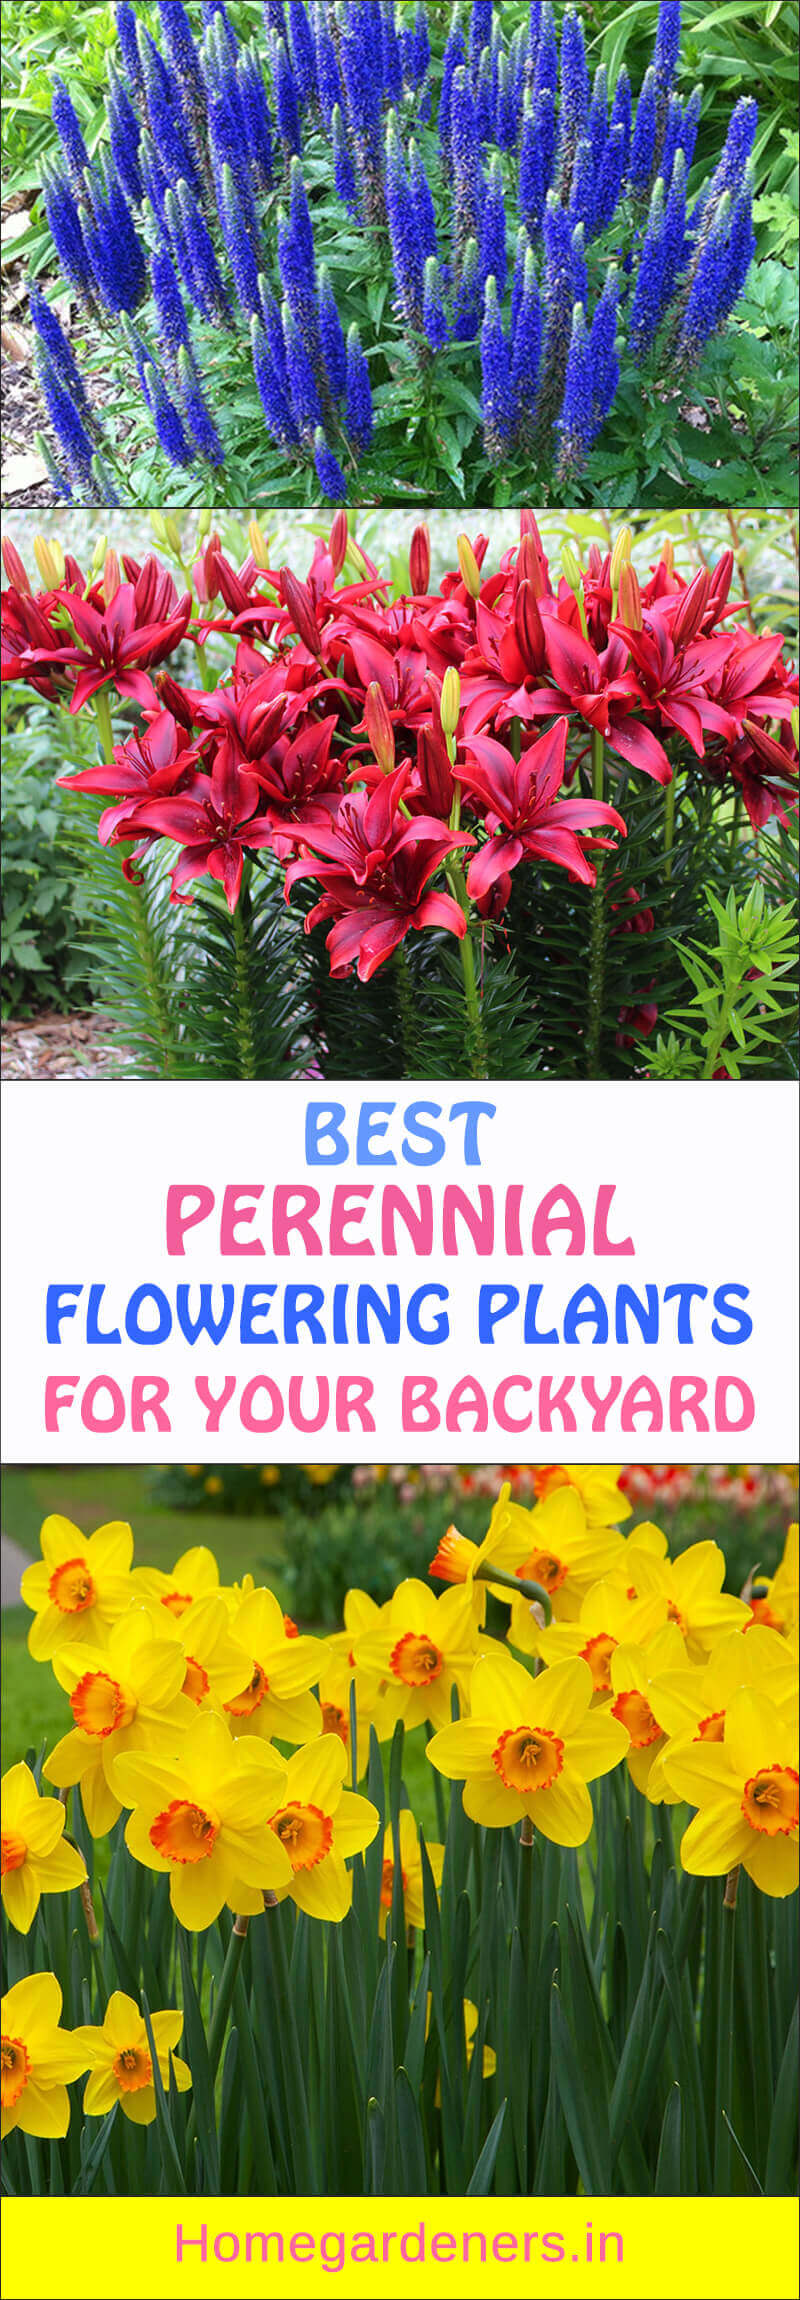 10 Best Perennial flowering plants for your Backyard